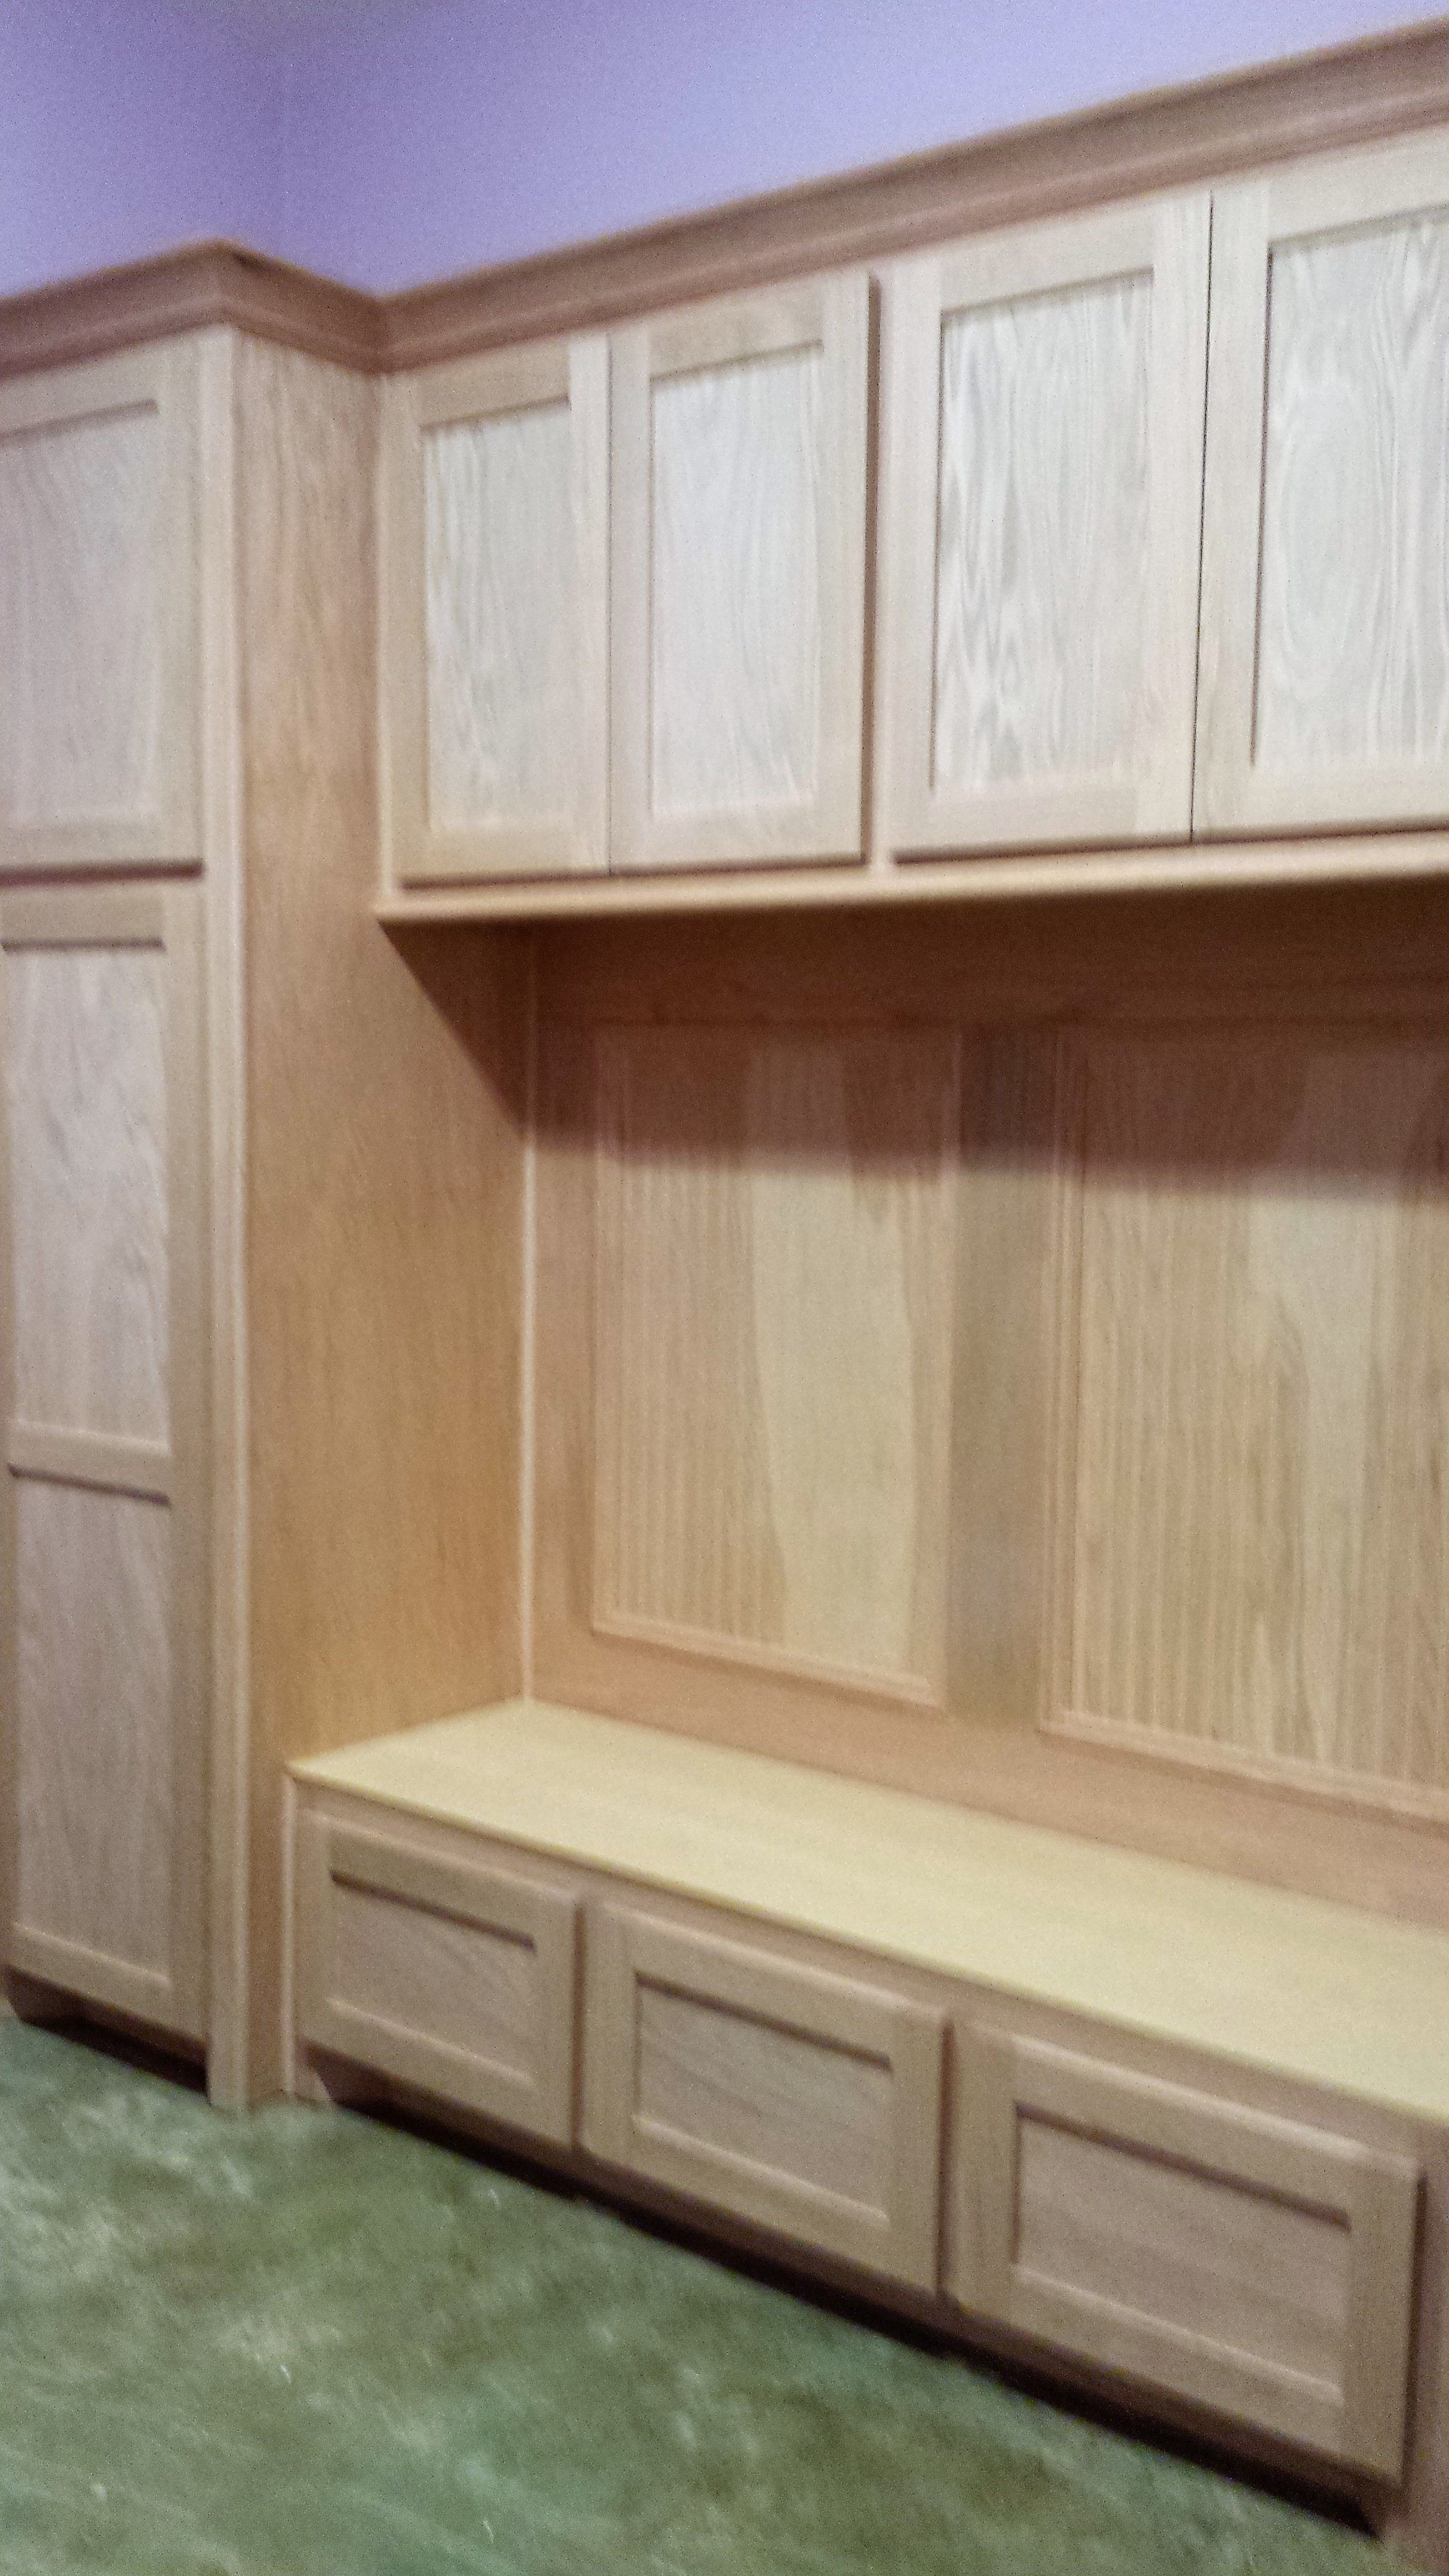 Storage Cabinets mud bench woodwork woodworking Shelves and Bookcases remodel & Storage Cabinets mud bench woodwork woodworking Shelves and ...